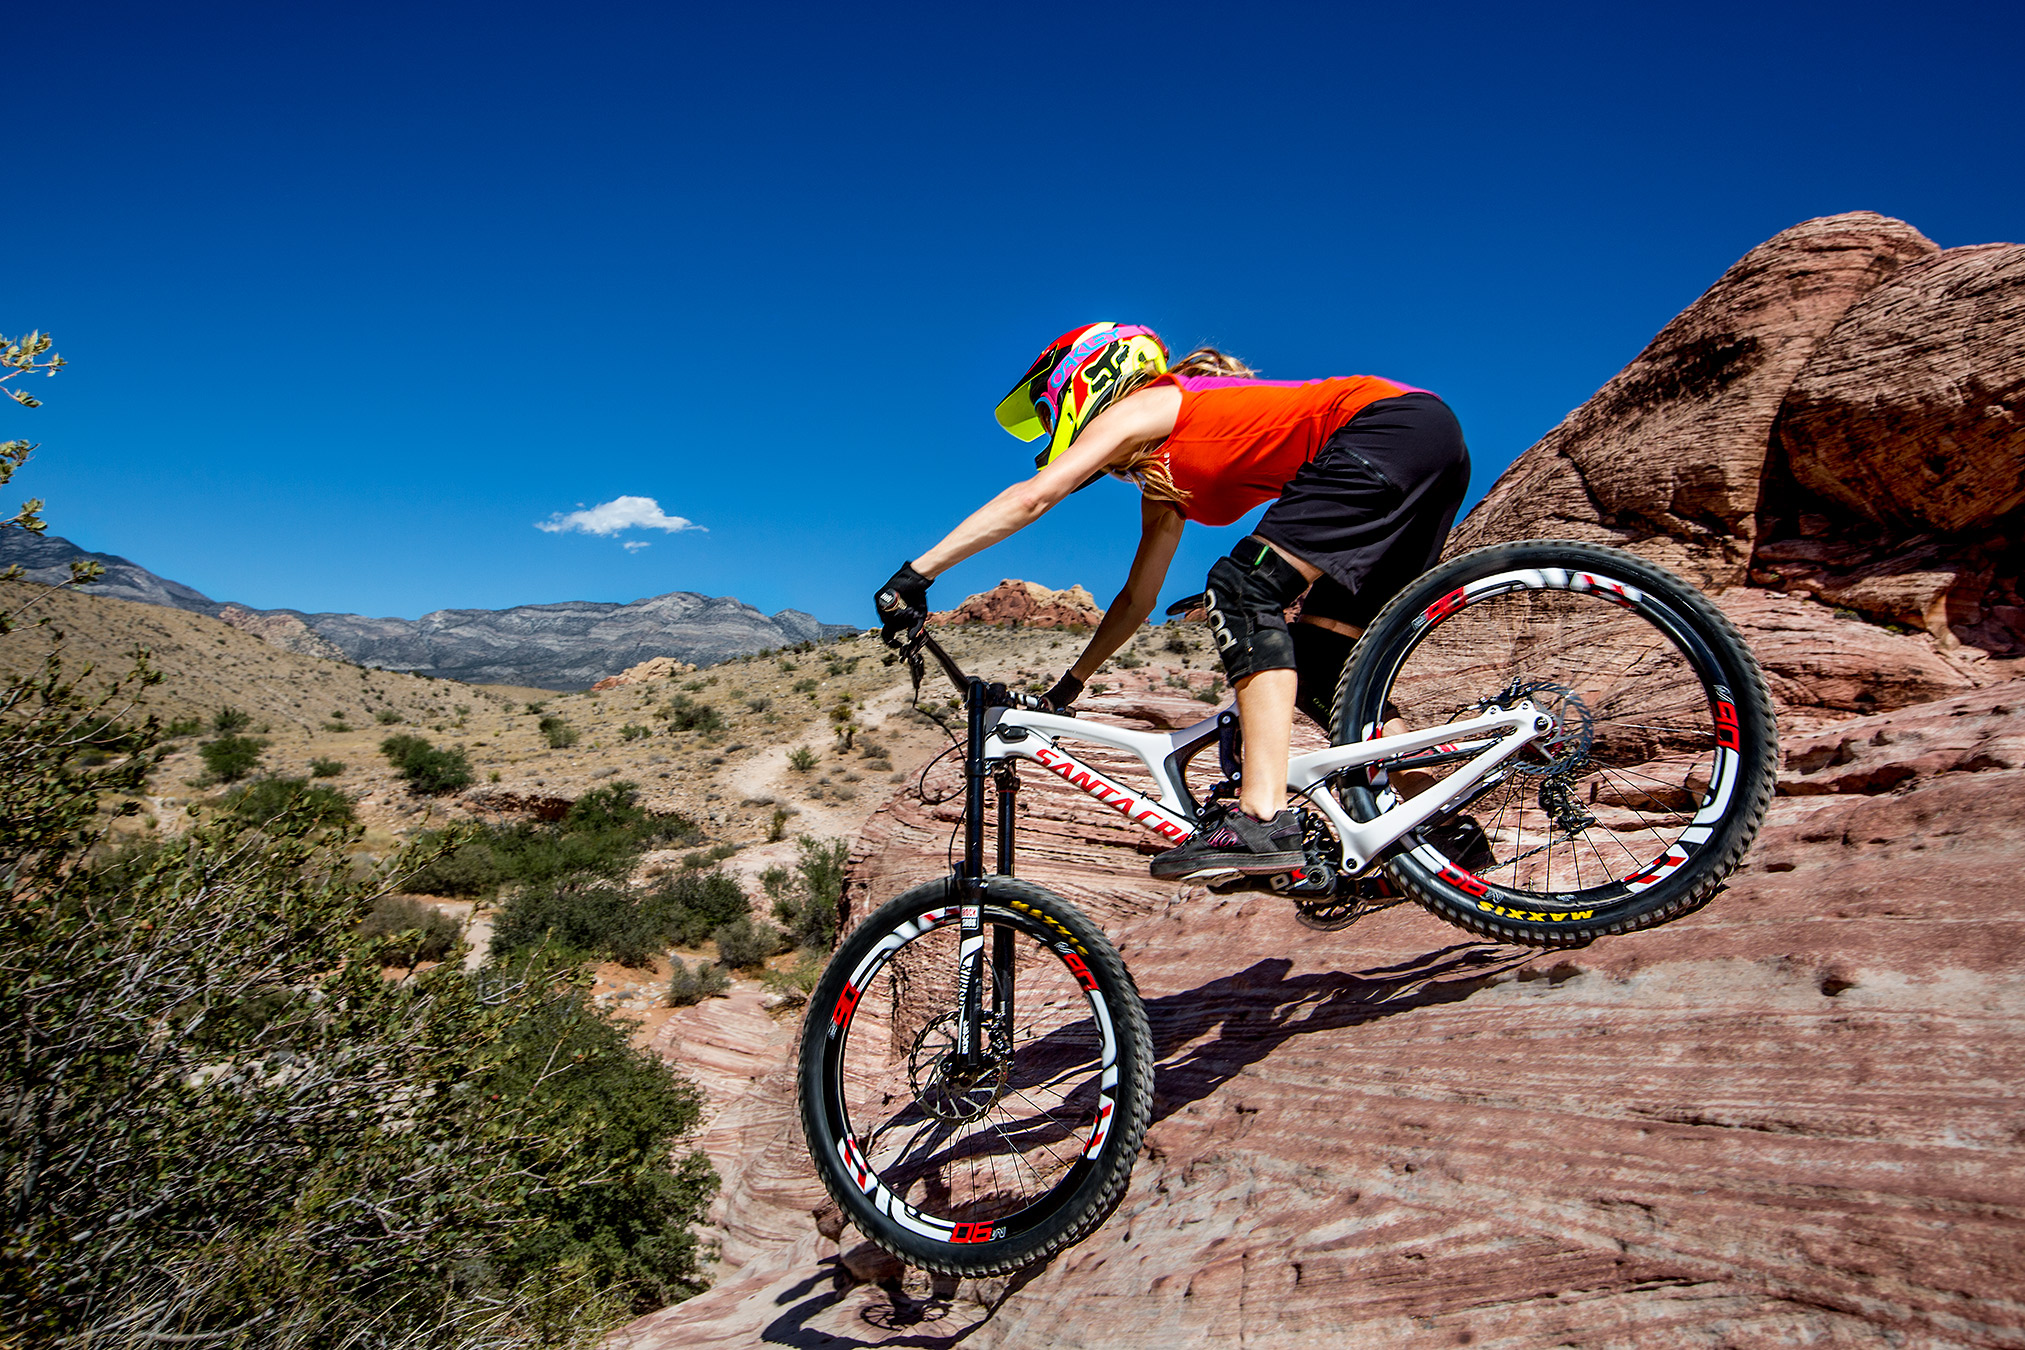 MOUNTAIN-BIKE_RED-ROCKS_NEVADA MATHIS ACTION SPORTS PORTRAIT © JONATHAN R. BECKERMAN PHOTOGRAPHY 9.jpg